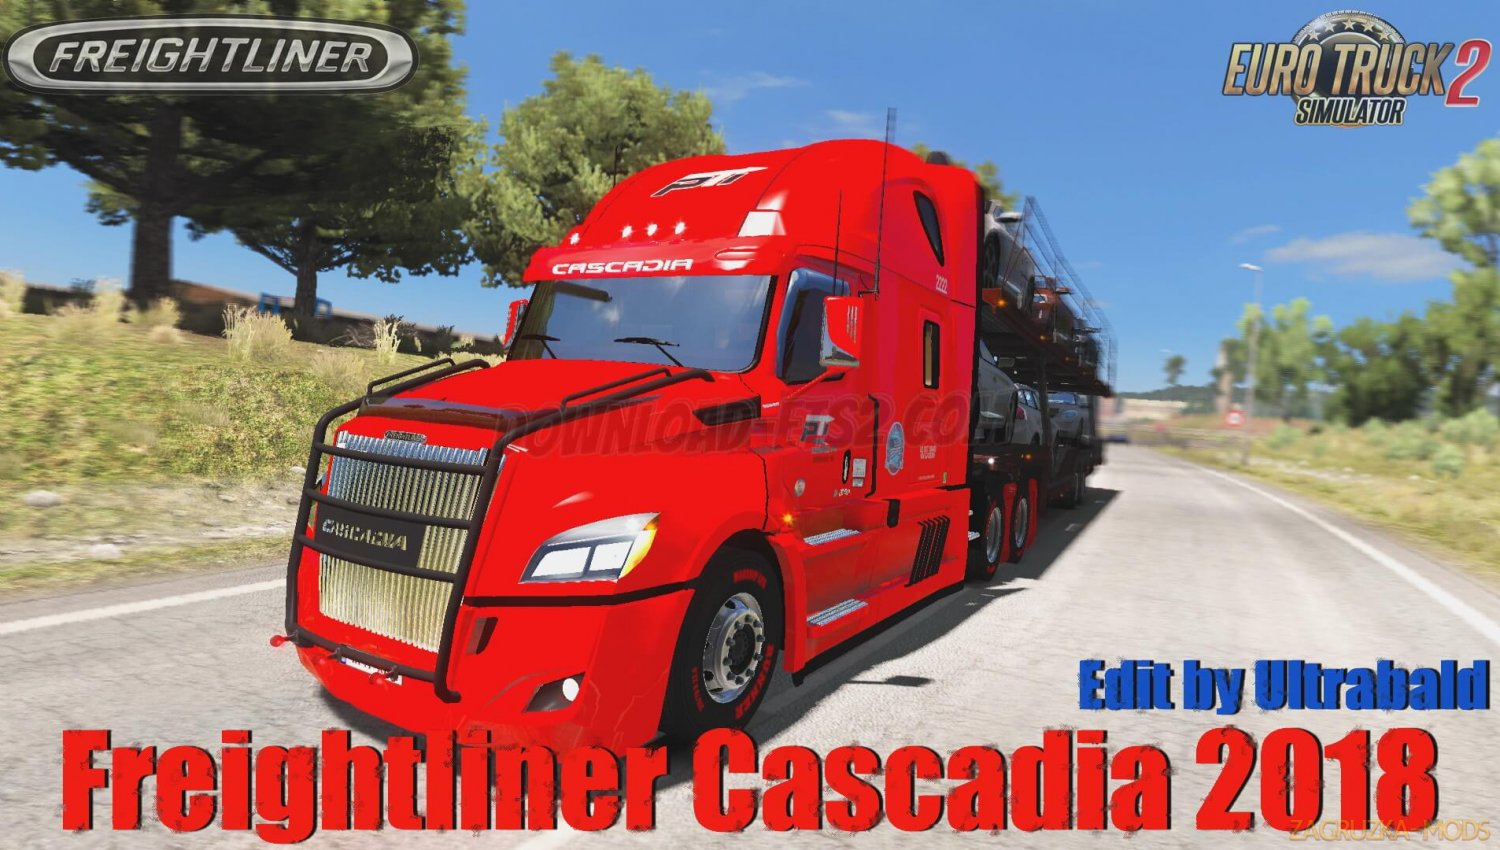 Freightliner Cascadia 2018 v1.5 Edit By Ultrabald (1.34.x) for ETS2